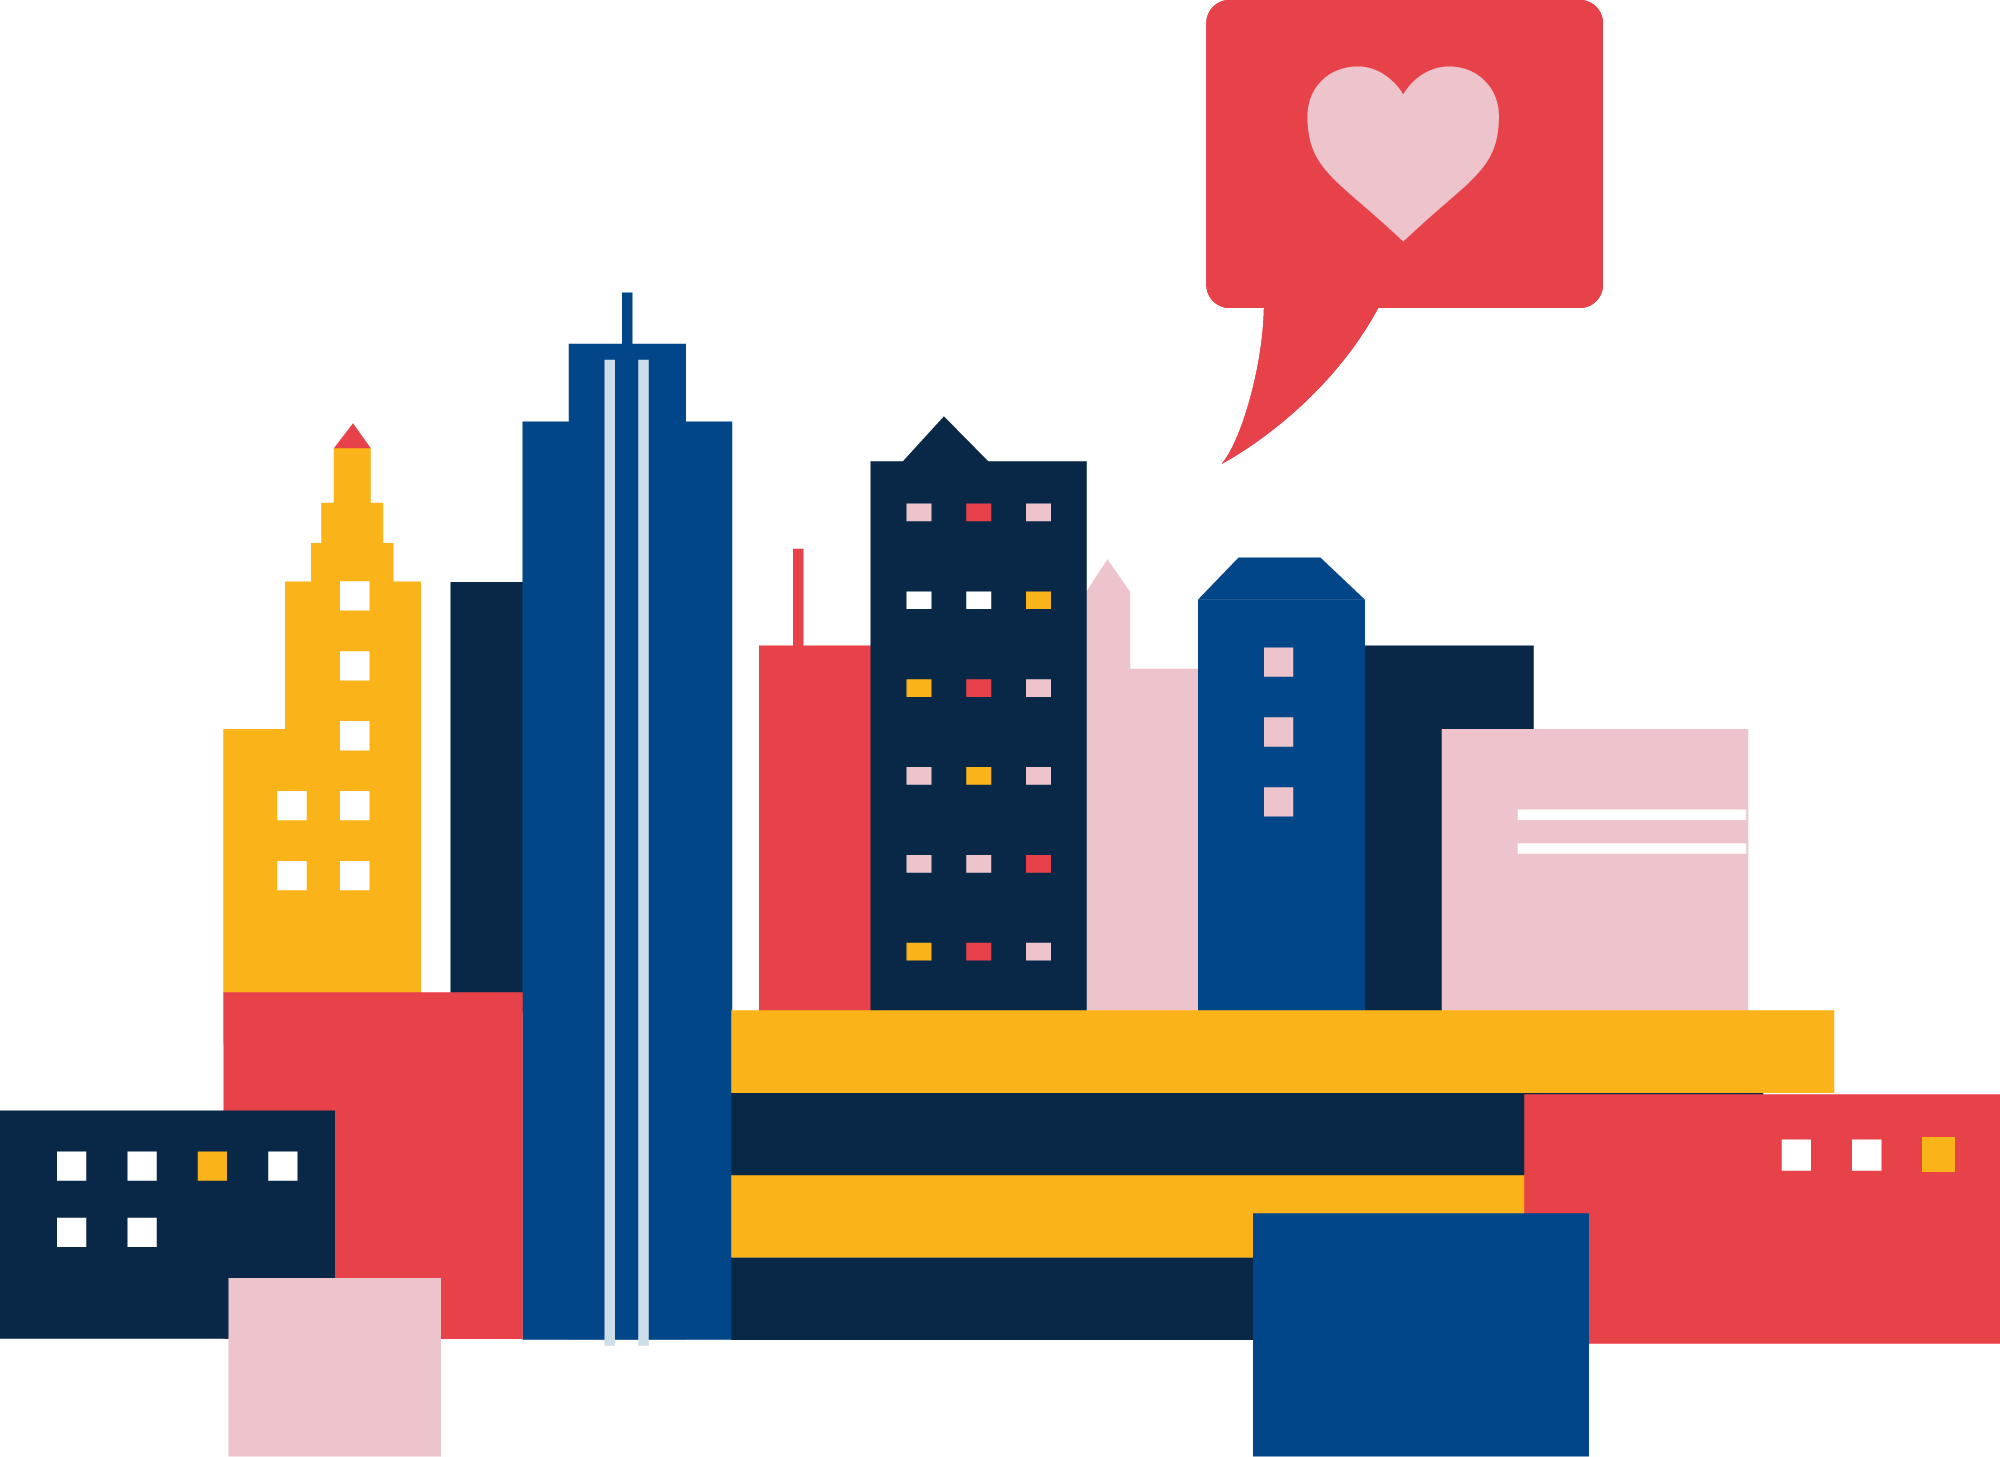 An illustration of the Kansas City skyline, with a heart icon at the top.